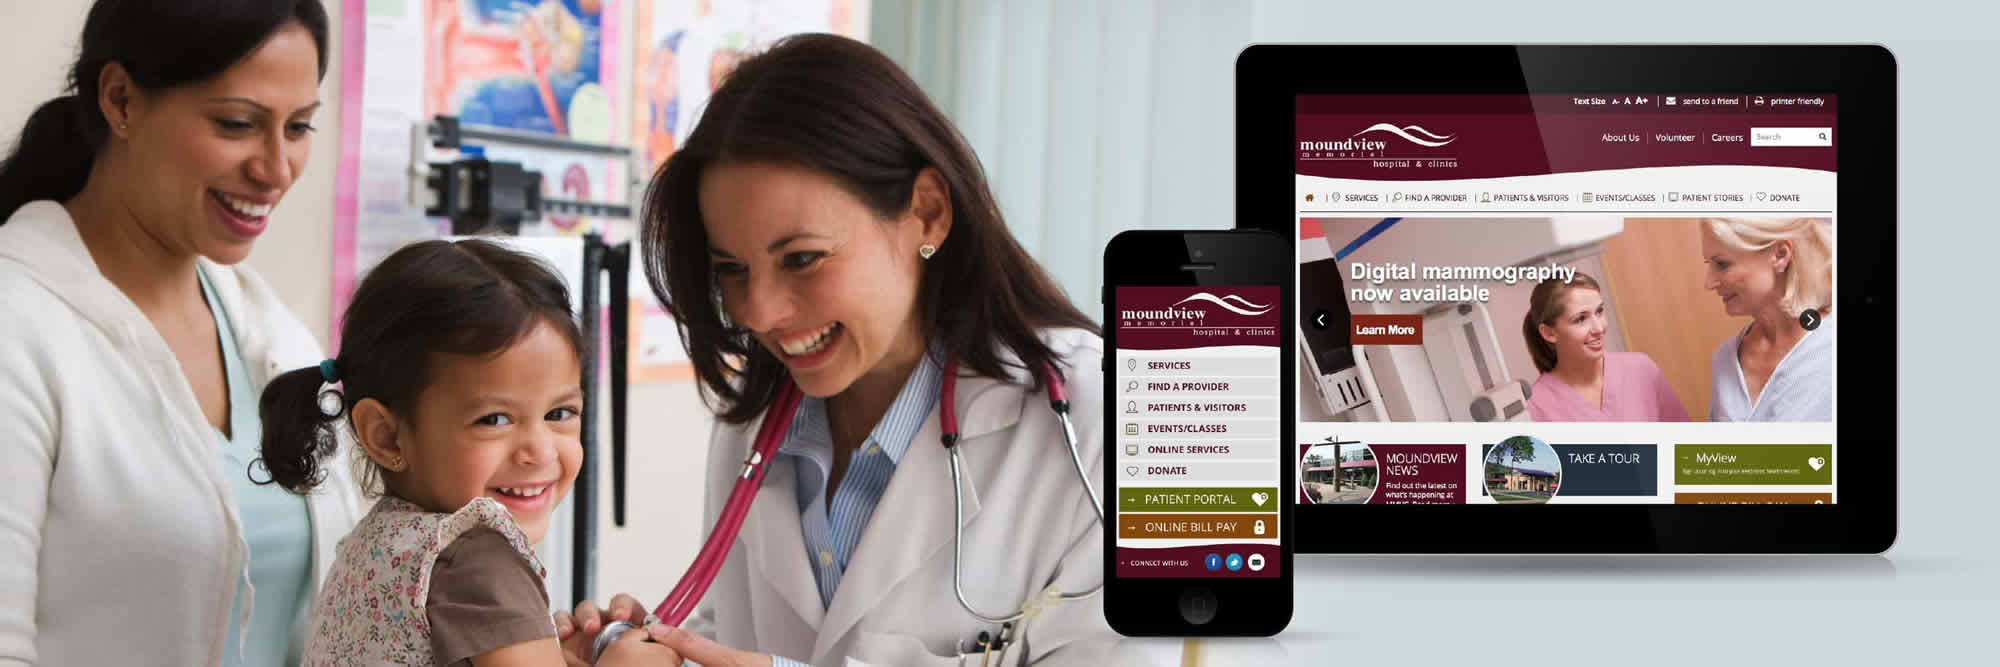 Moundview Memorial Hospital Web Design